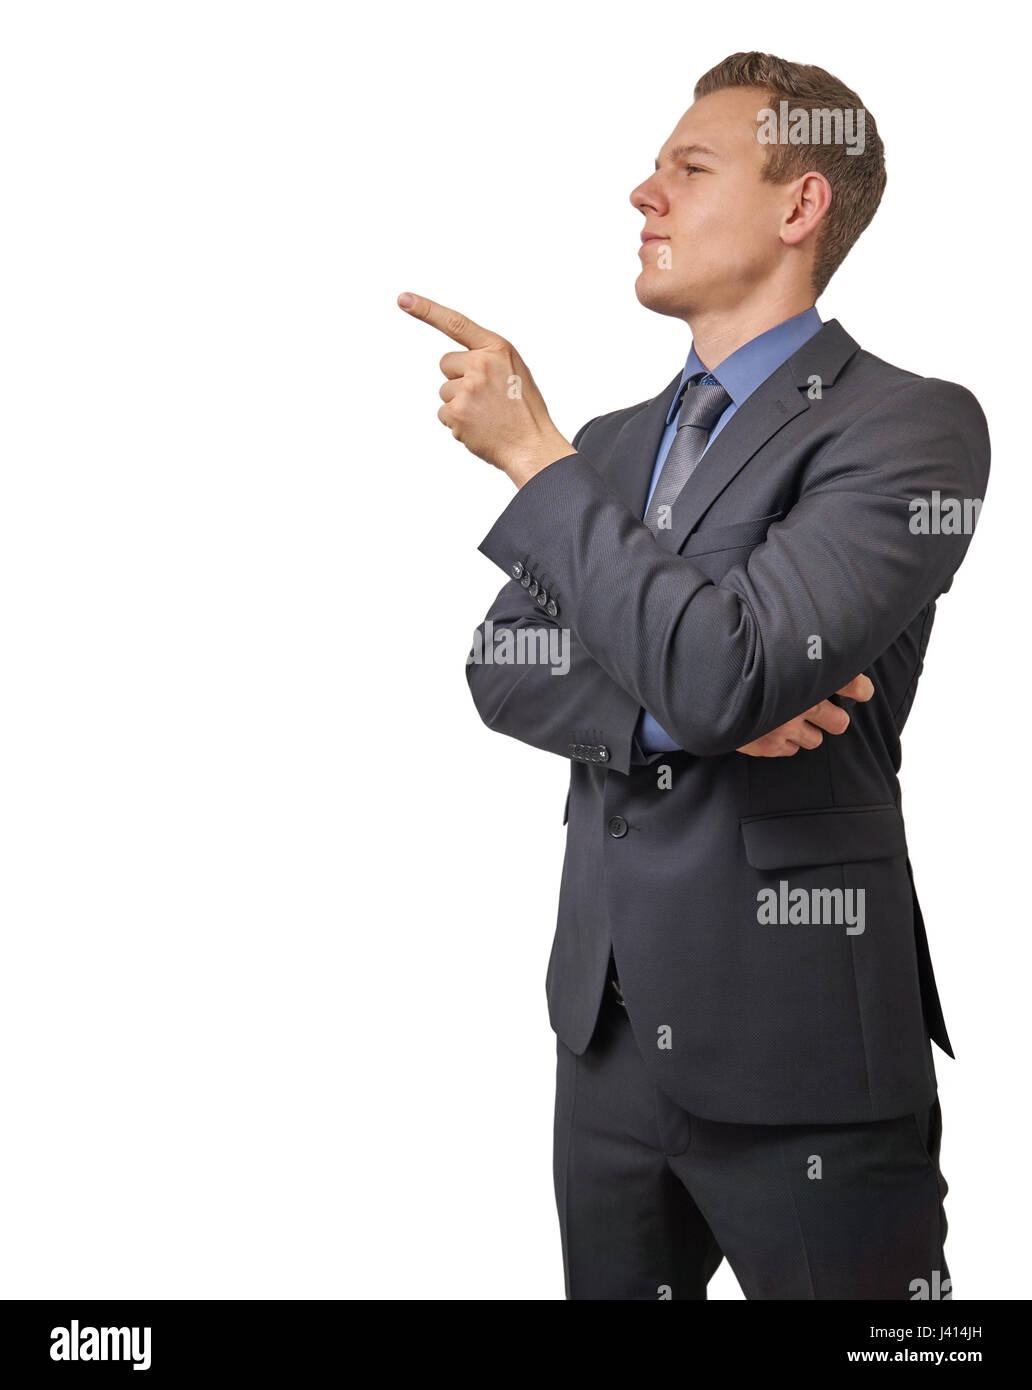 Young businessman points with his finger to his right - isolated with copyspace. Sceptical, critical or analyzing - Stock Image